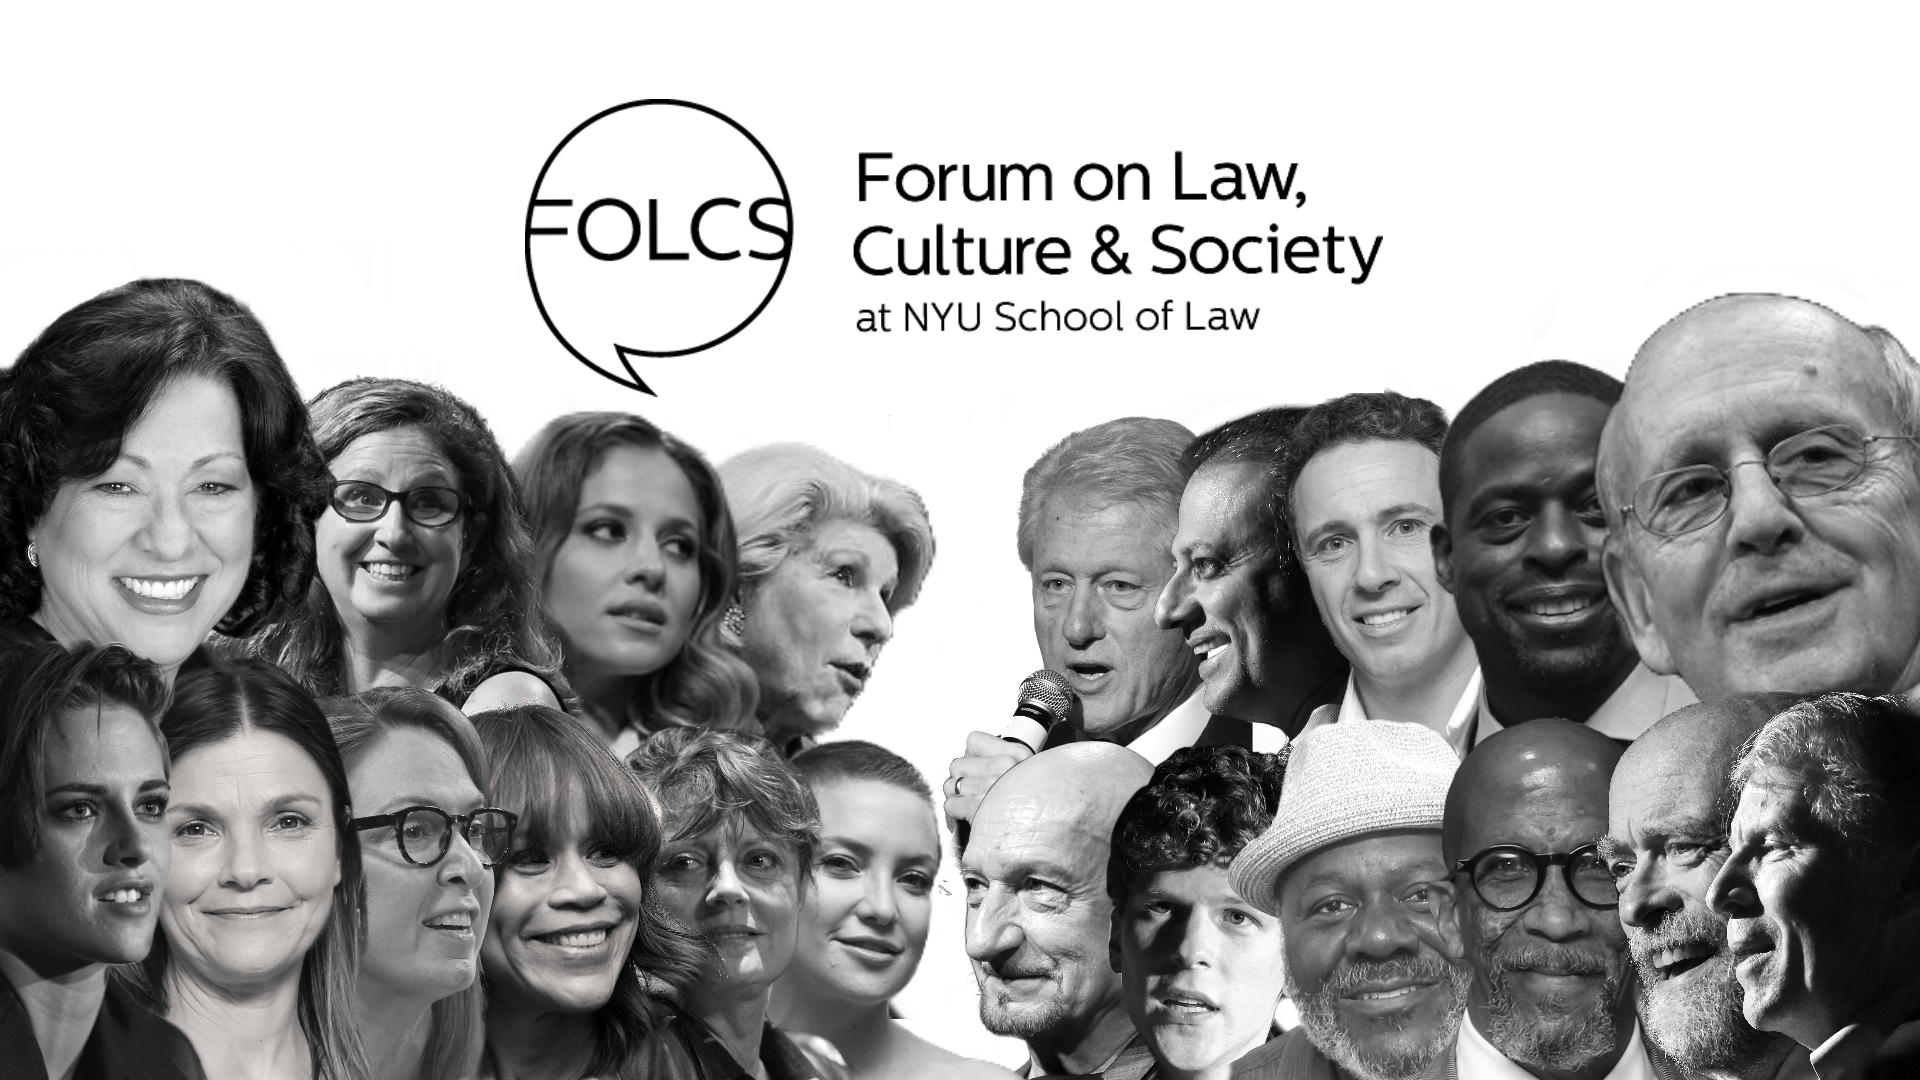 Home - Forum on Law, Culture & Society